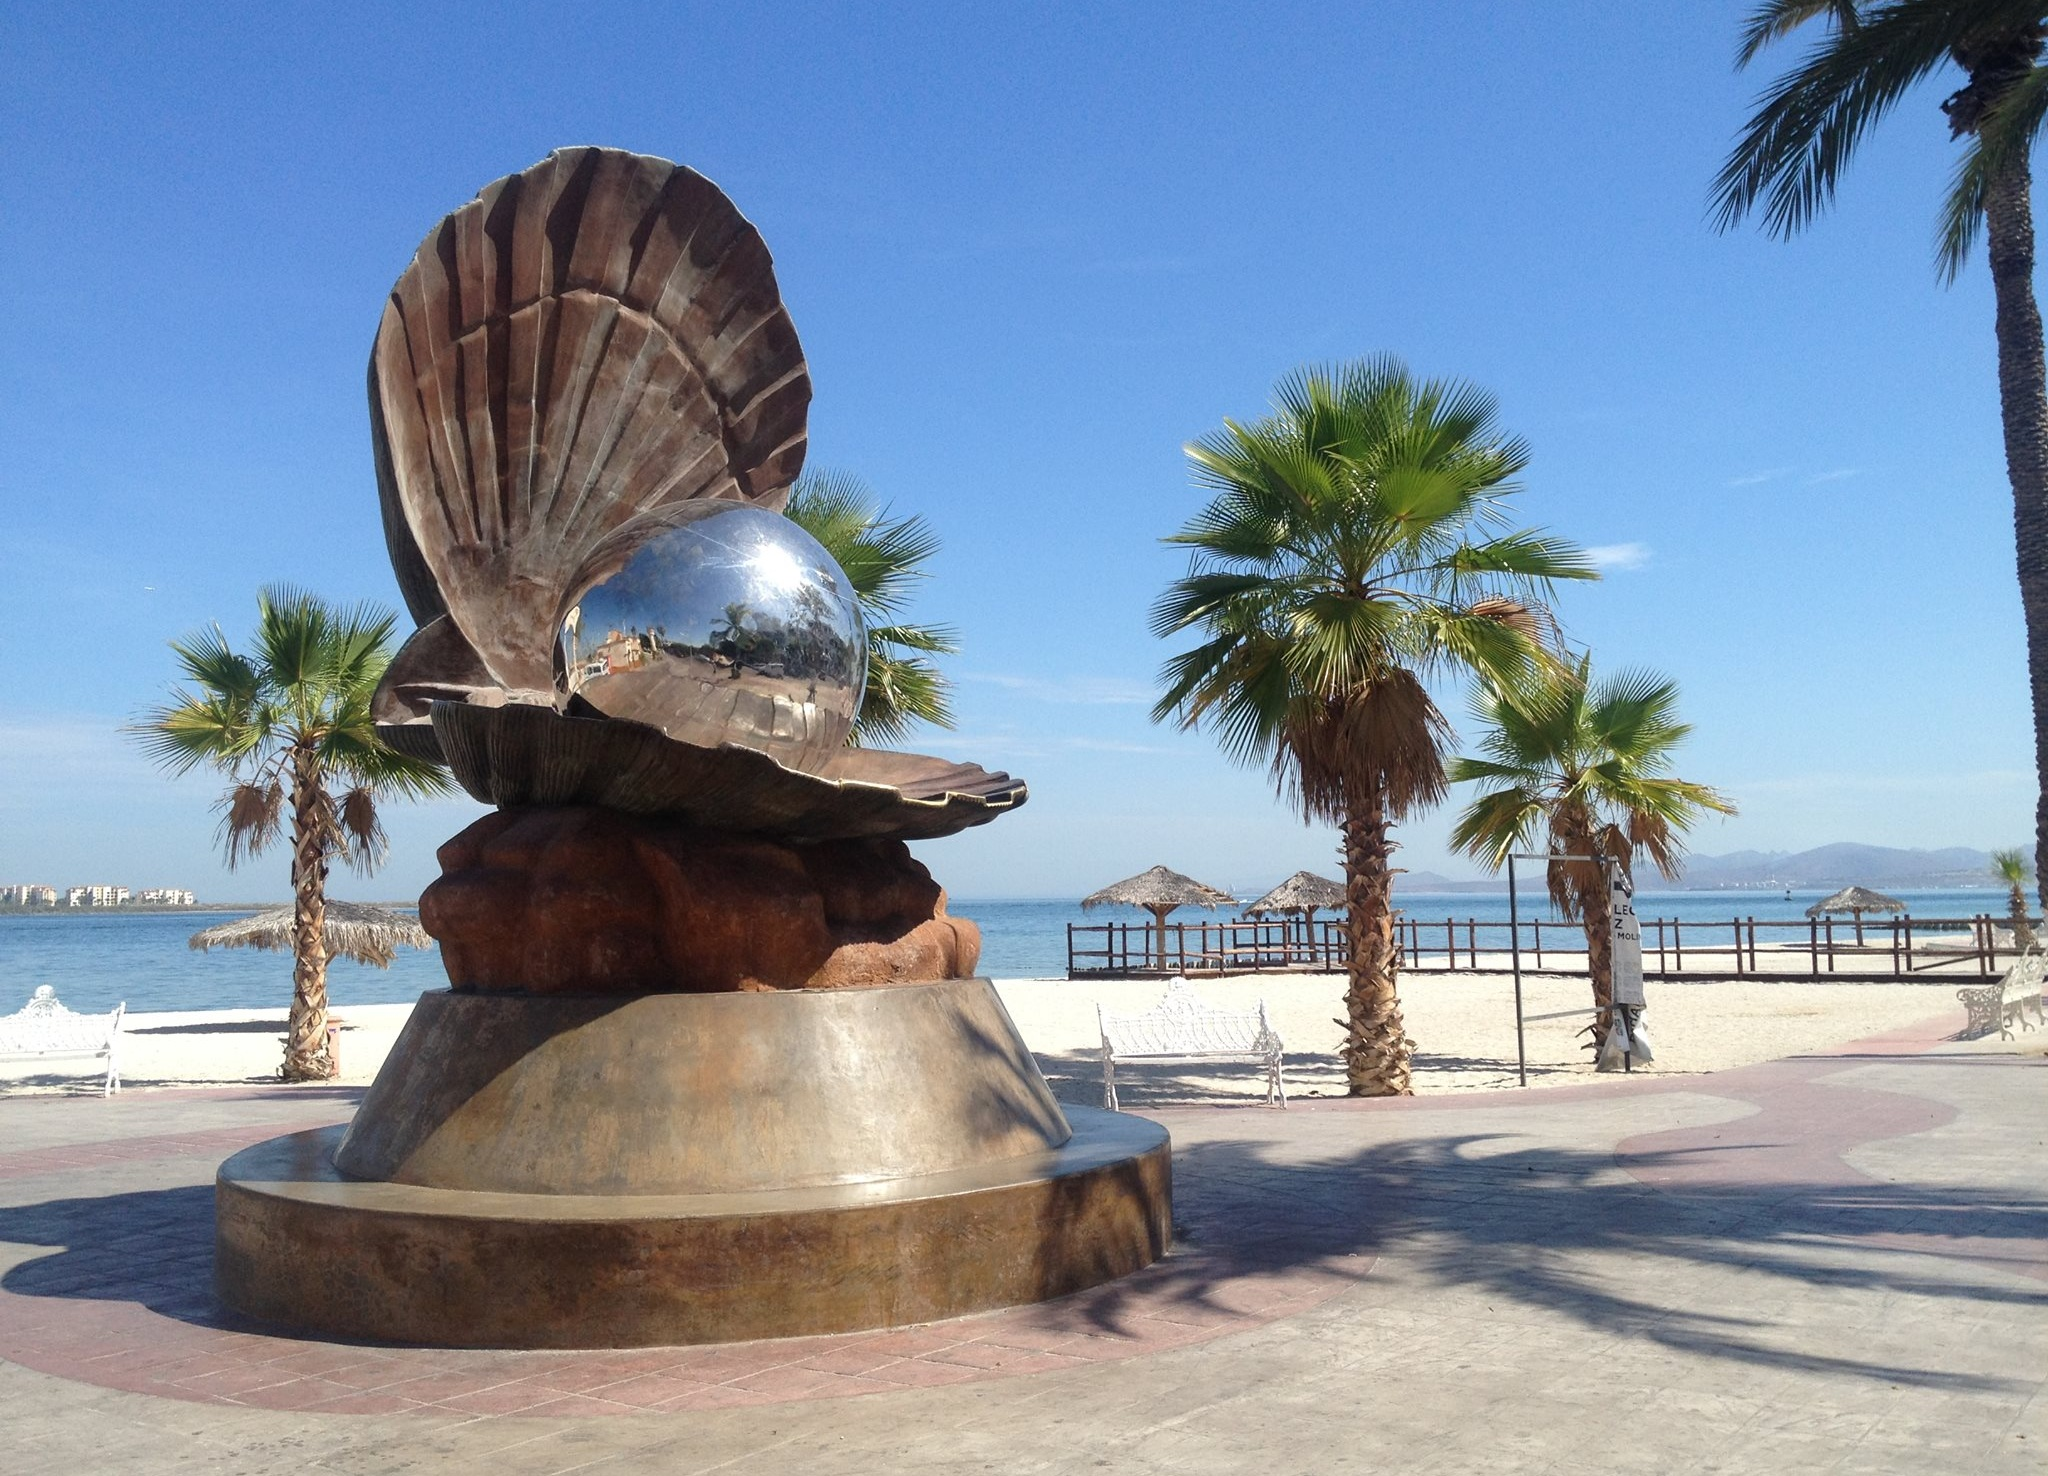 THE PEARL IS PART OF THE RICH HISTORY AND FOLKLORE OF LA PAZ. STROLL THE MALECÒN PROMENADE AND EXPLORE THE CITIE'S LOCAL ART SCENE. IMAGE THANKS TO HANNAH GORSKI AND  BAJA NOTEBOOK